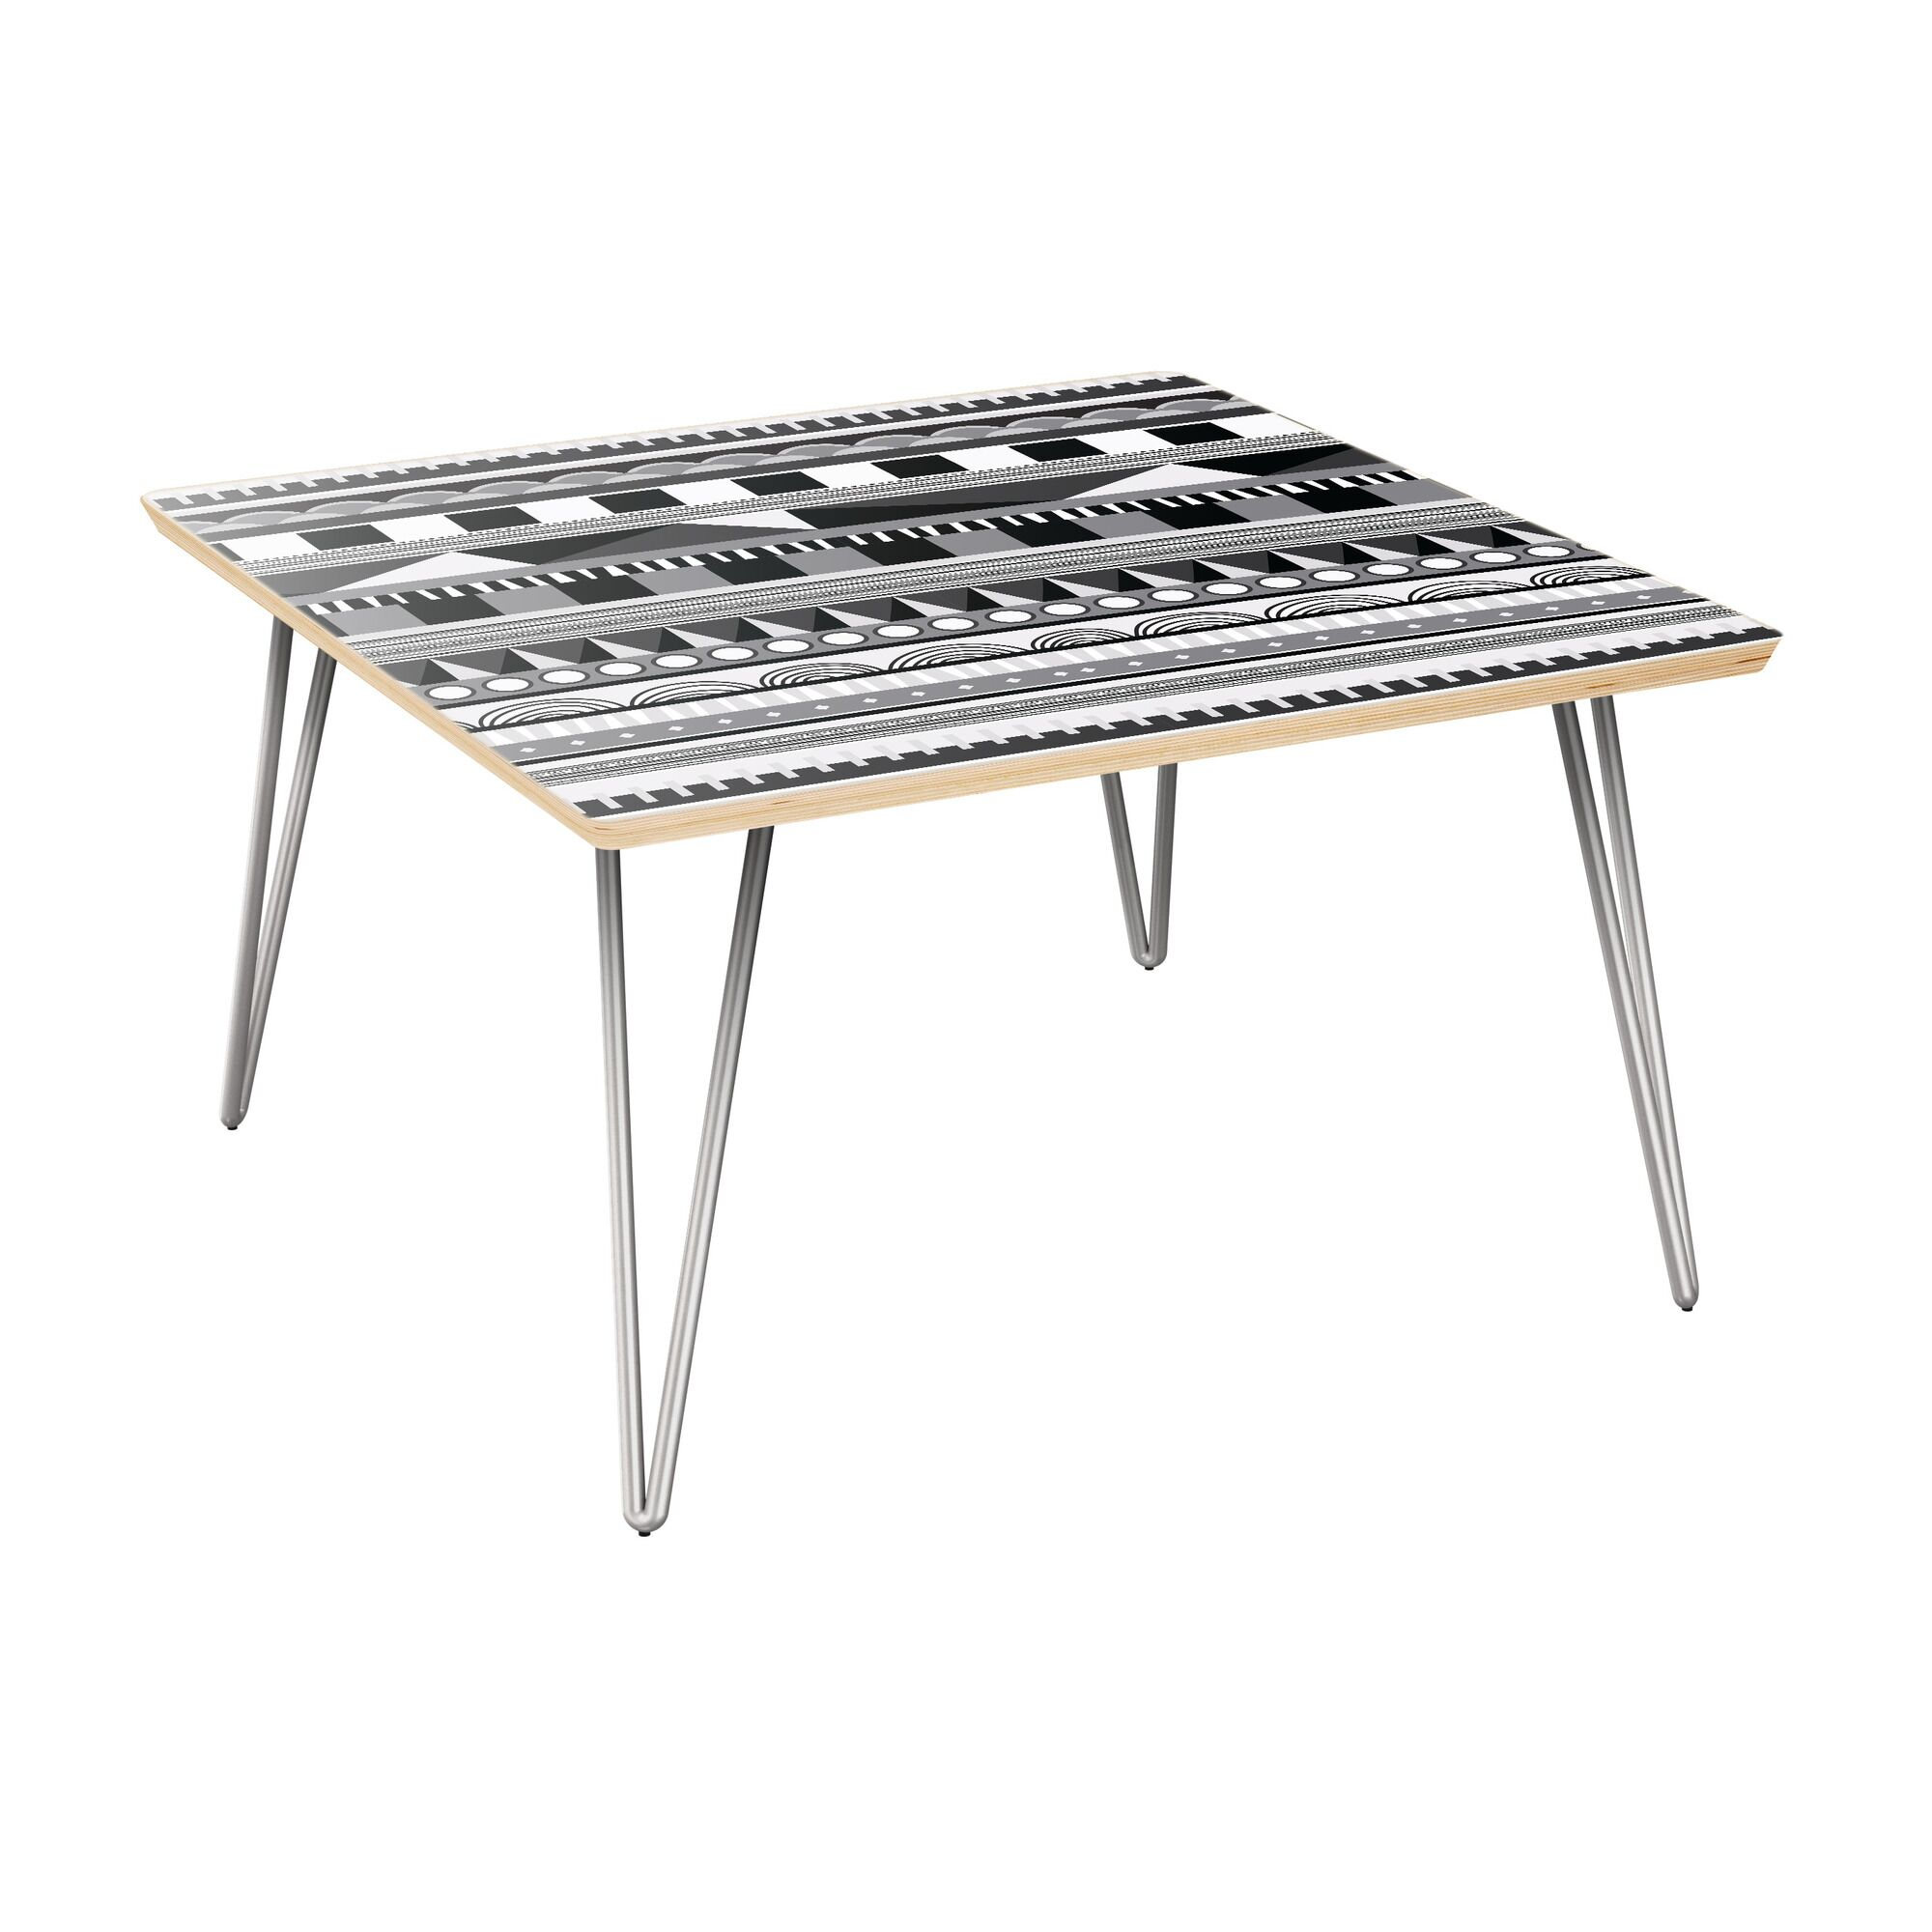 Hollenbeck Coffee Table Table Top Color: Natural, Table Base Color: Chrome